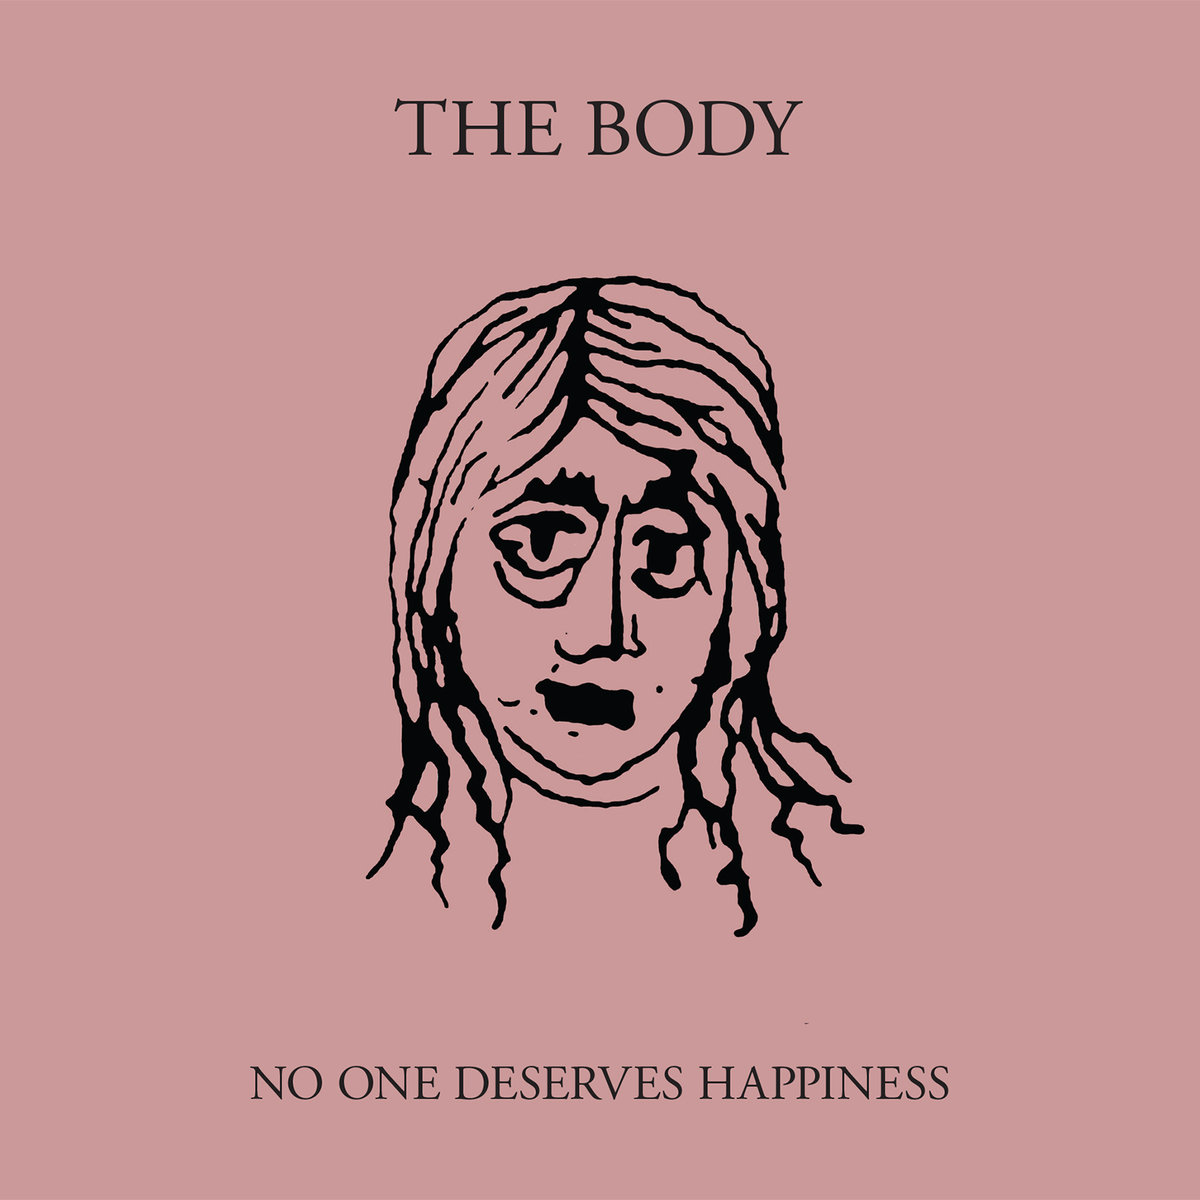 best albums of 2016 so far The Body